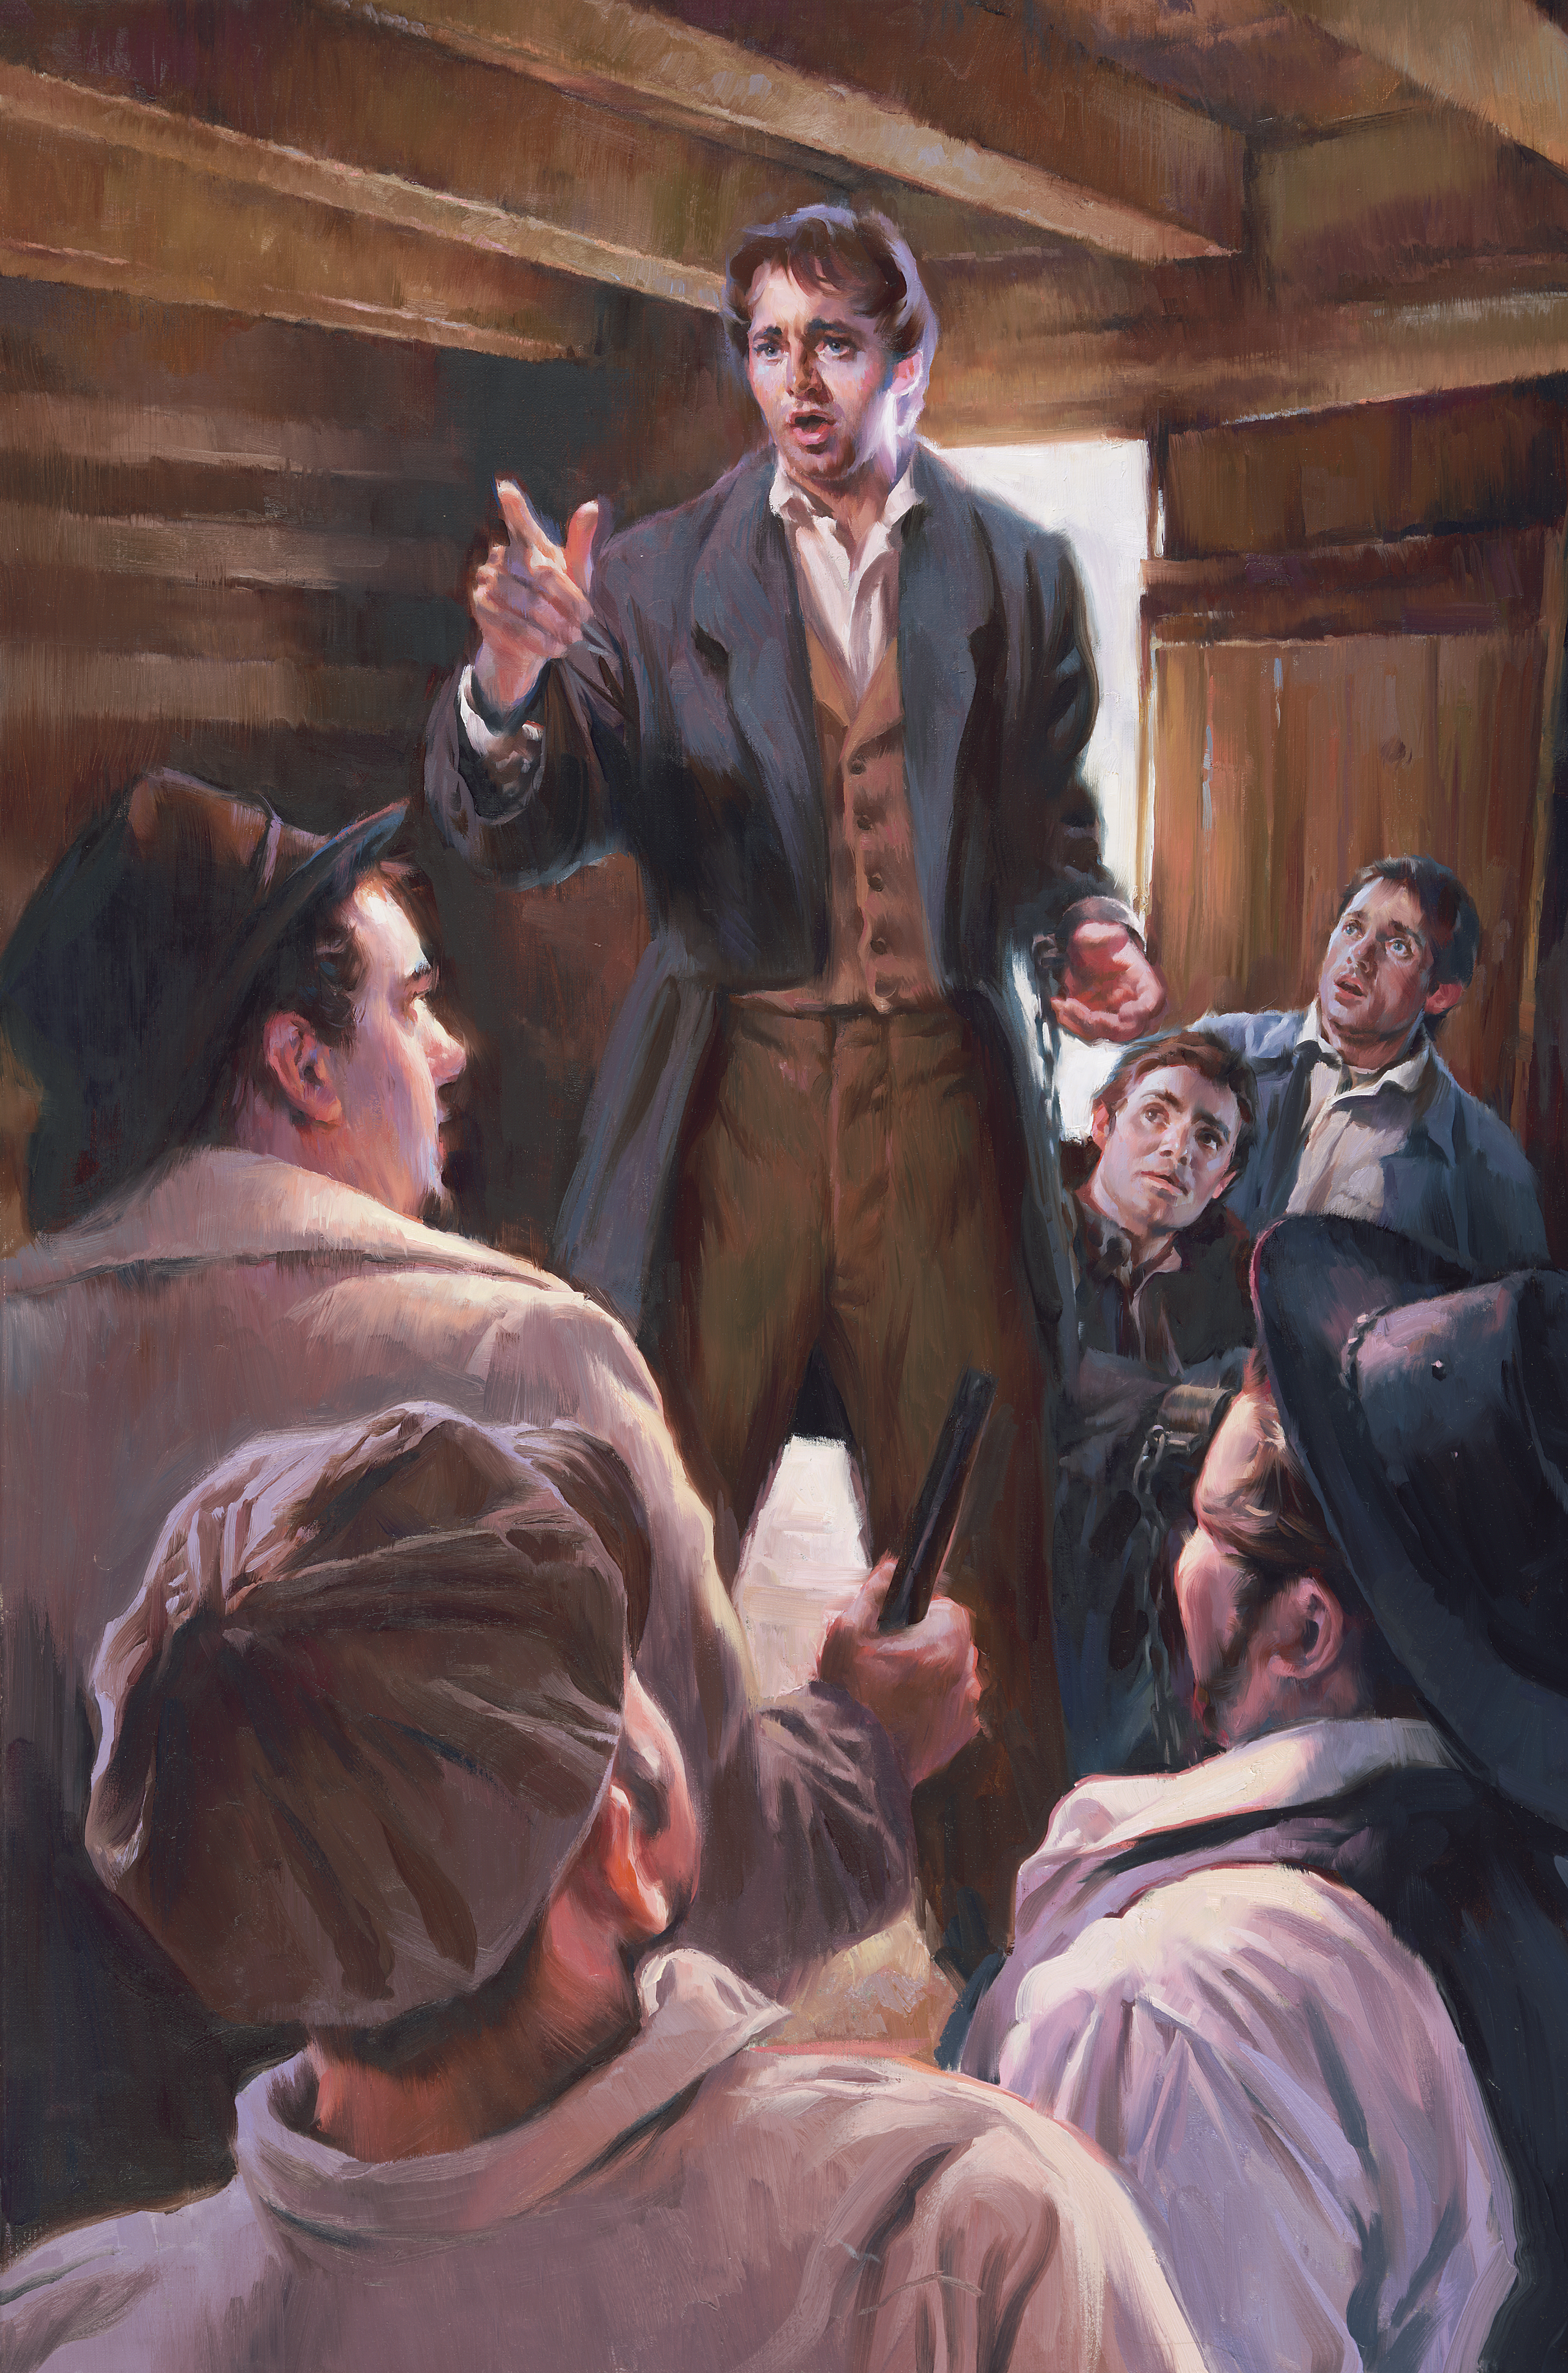 Joseph Smith Rebuking the Guards in Richmond Jail, by Sam Lawlor